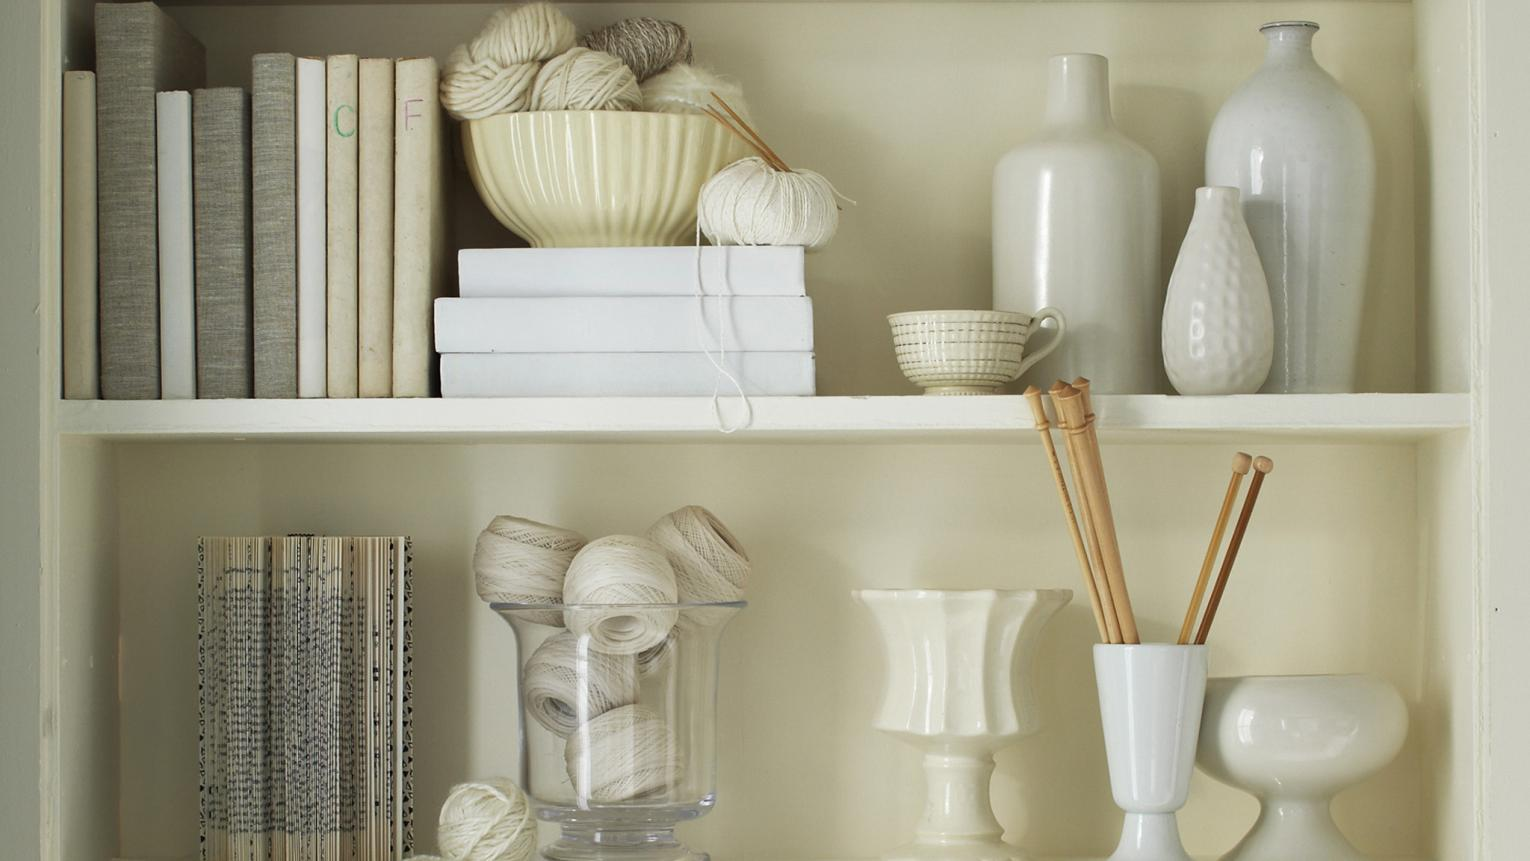 Bookshelves filled with vases, books and precious momentos in beautiful shades of white and off-white.